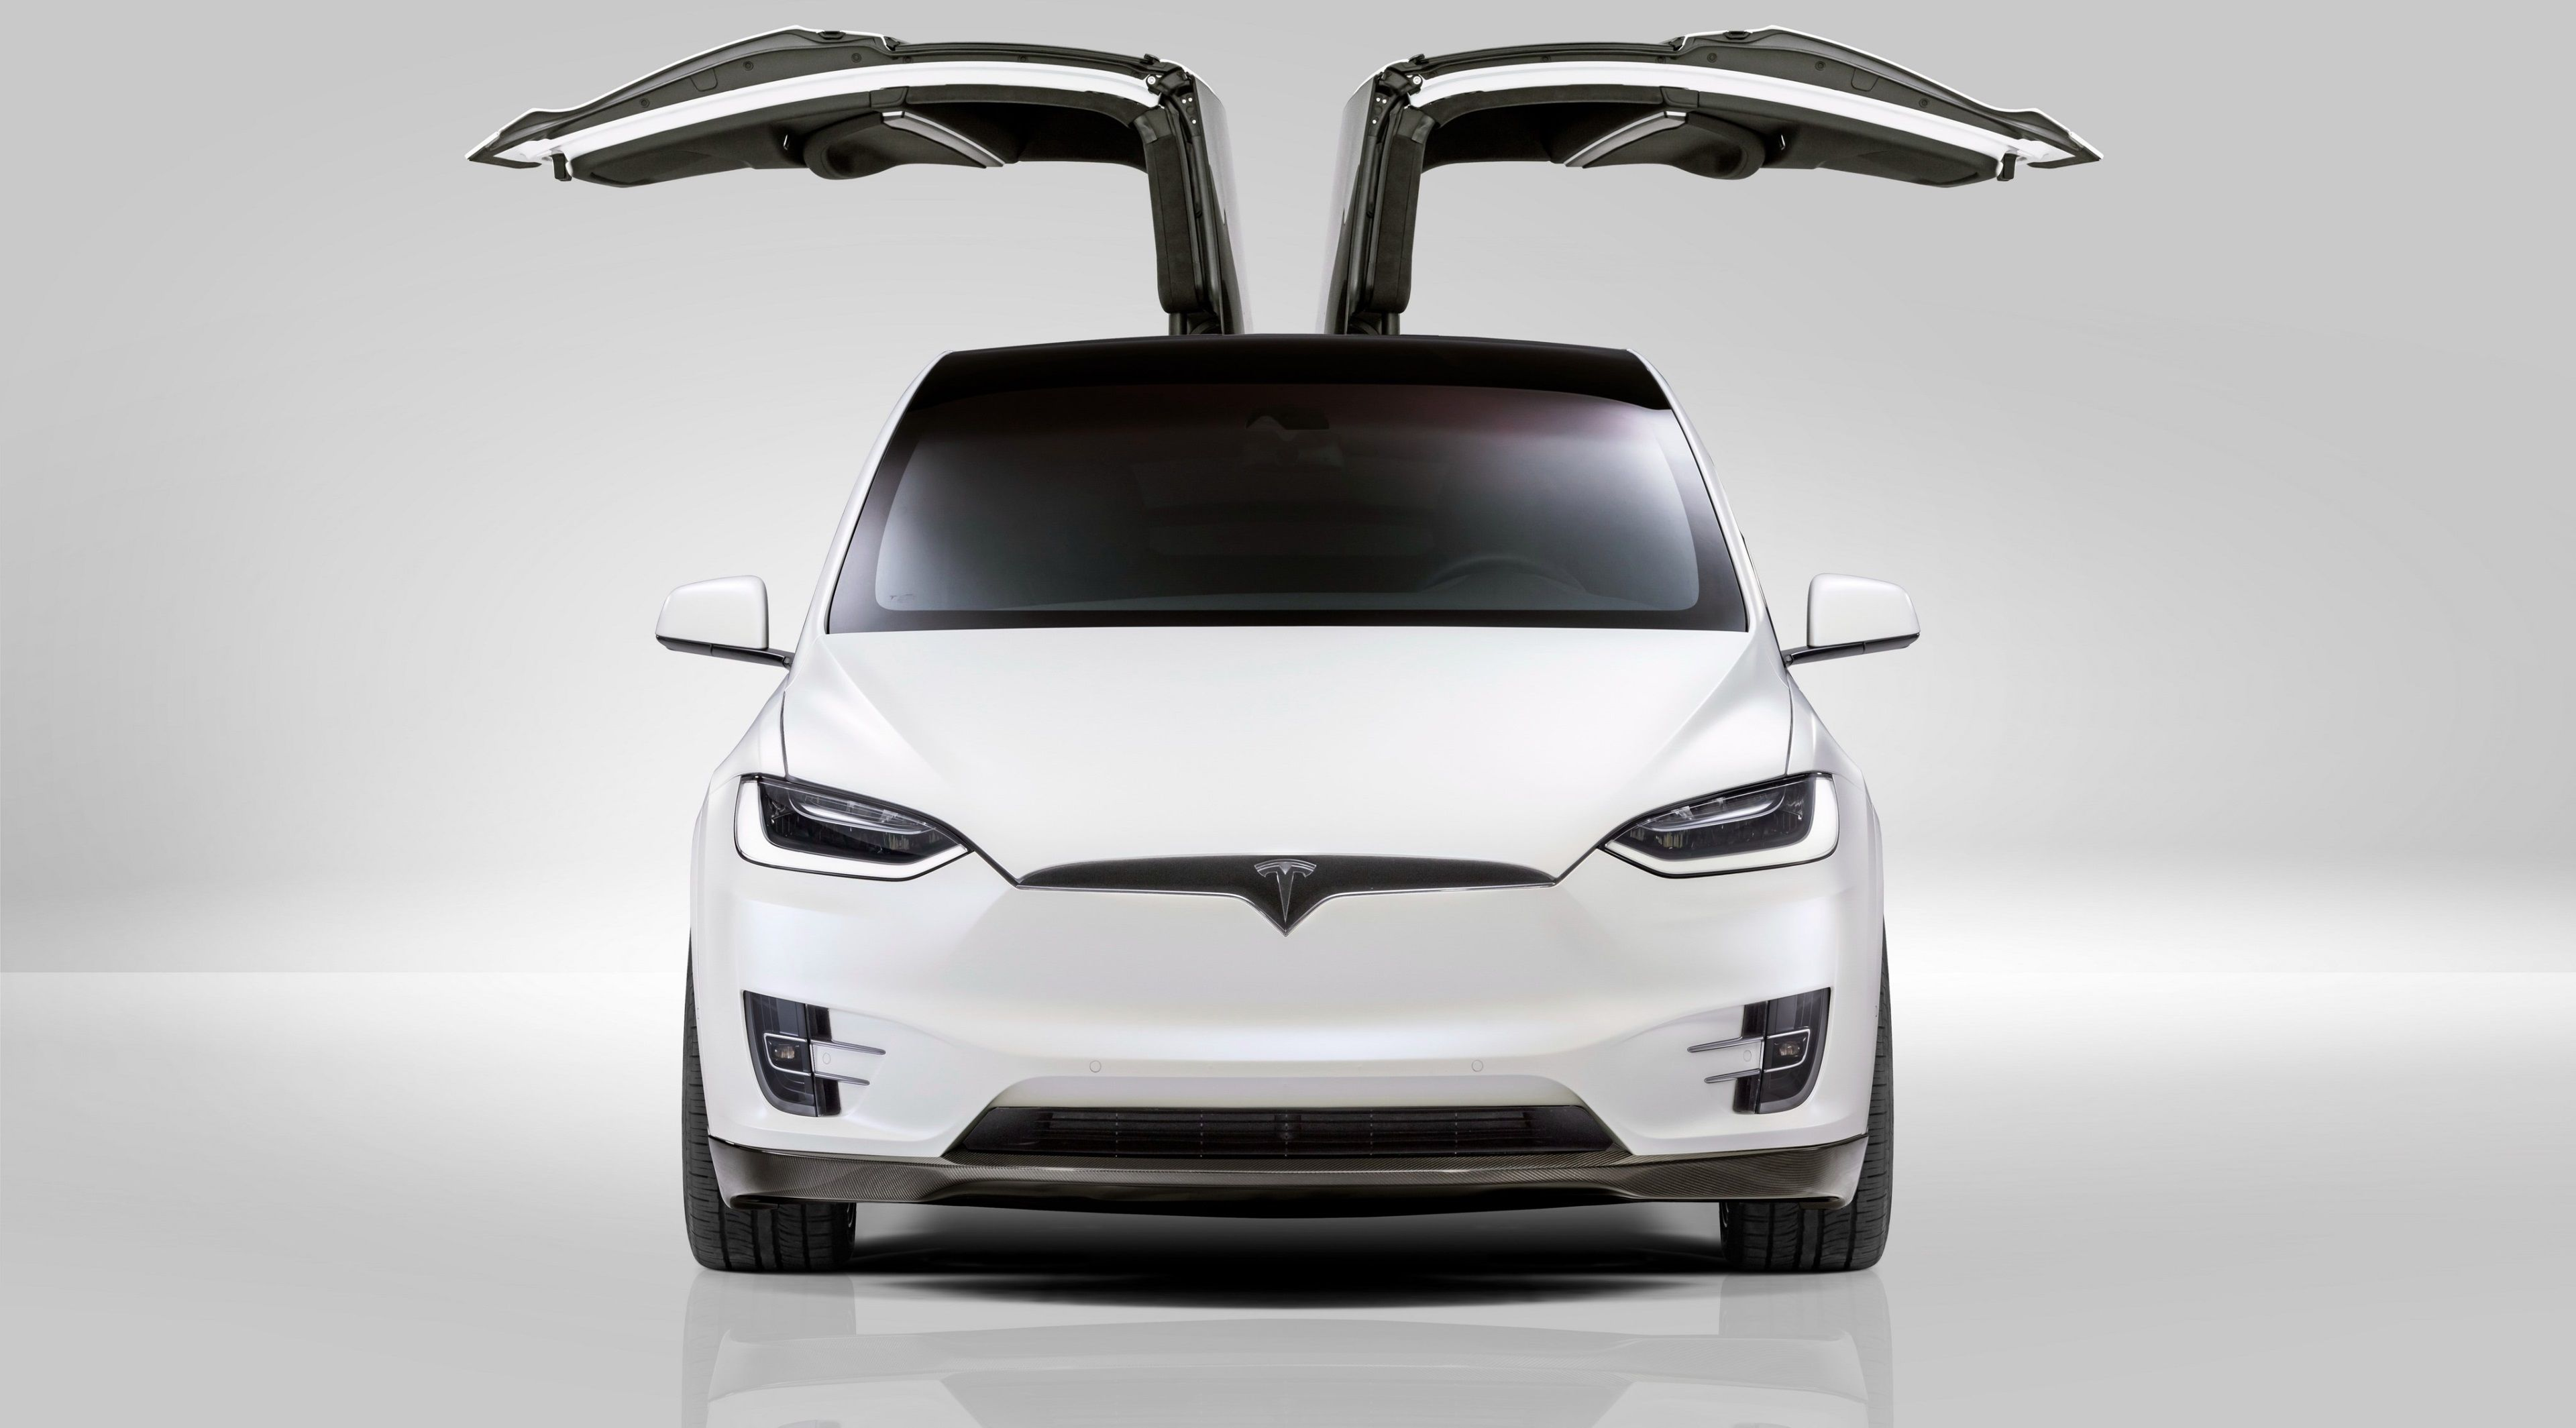 3840x2129 tesla model x 4k wallpaper desktop (с